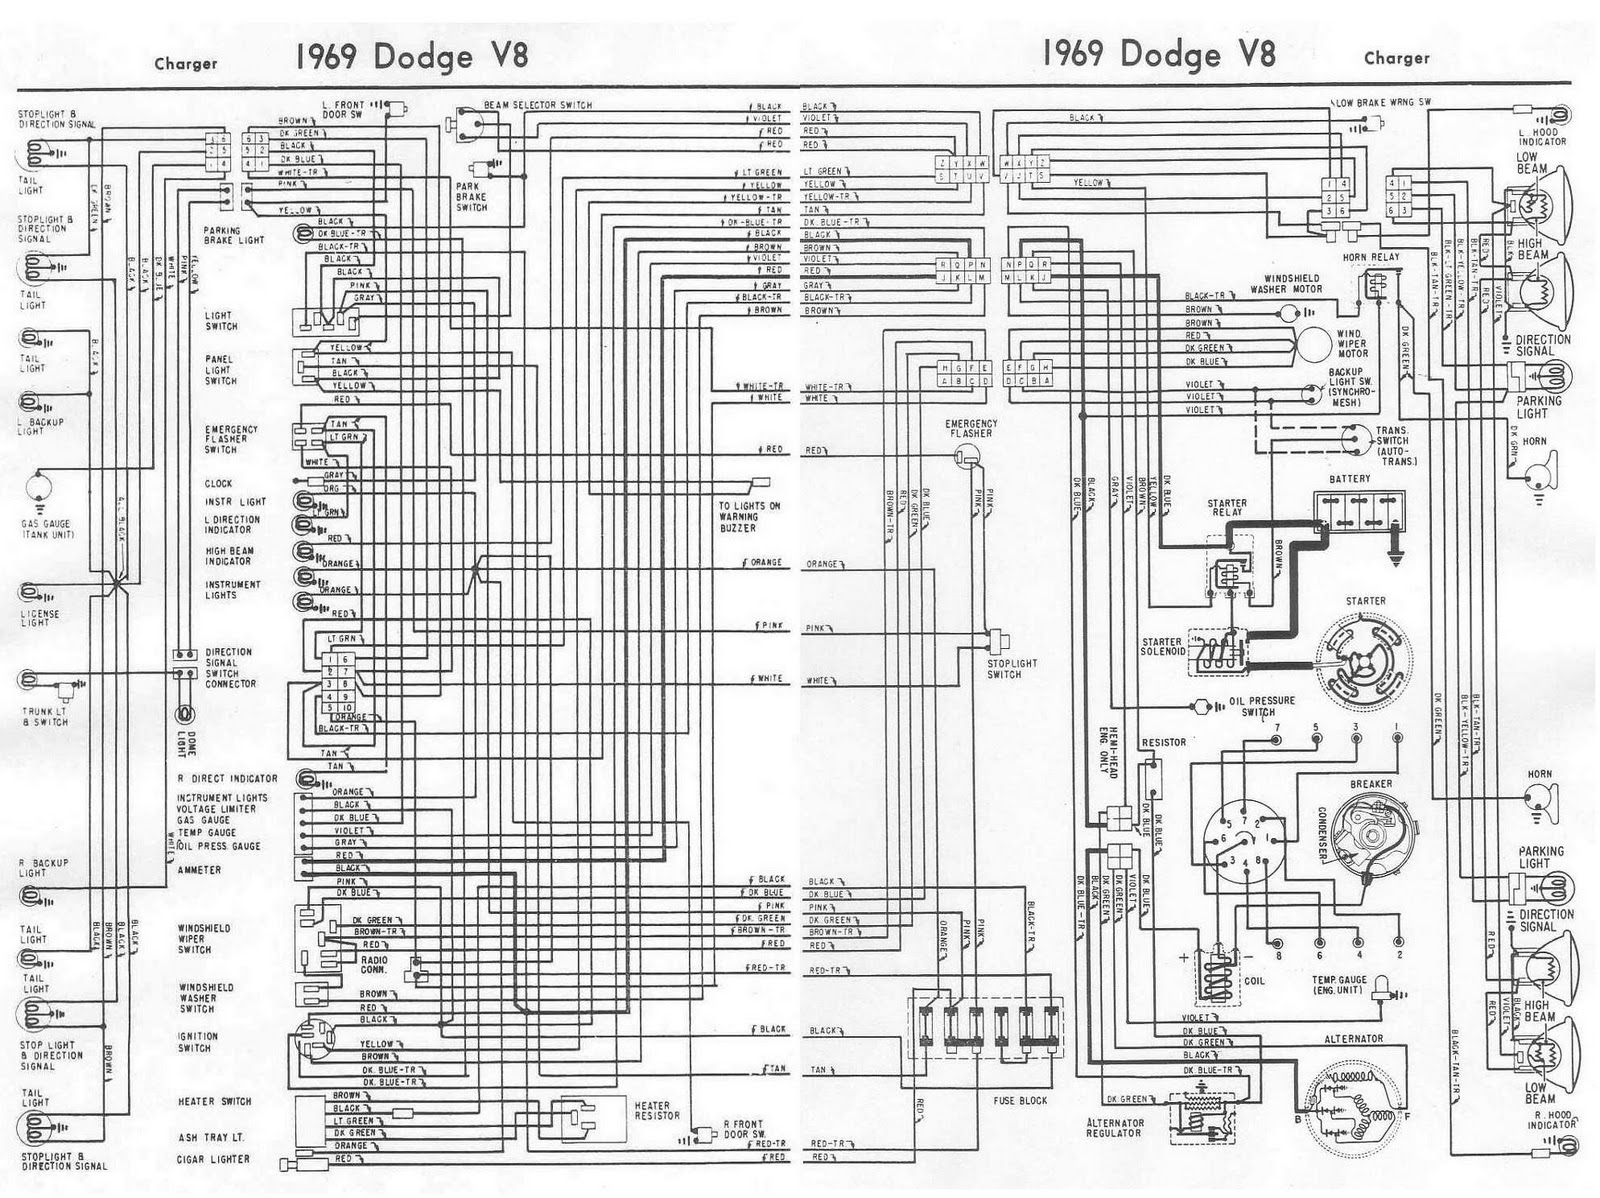 1969+Dodge+Charger+V8+Complete+Wiring+Diagram dodge charger 1969 v8 complete electrical wiring diagram all dodge wiring diagrams at suagrazia.org